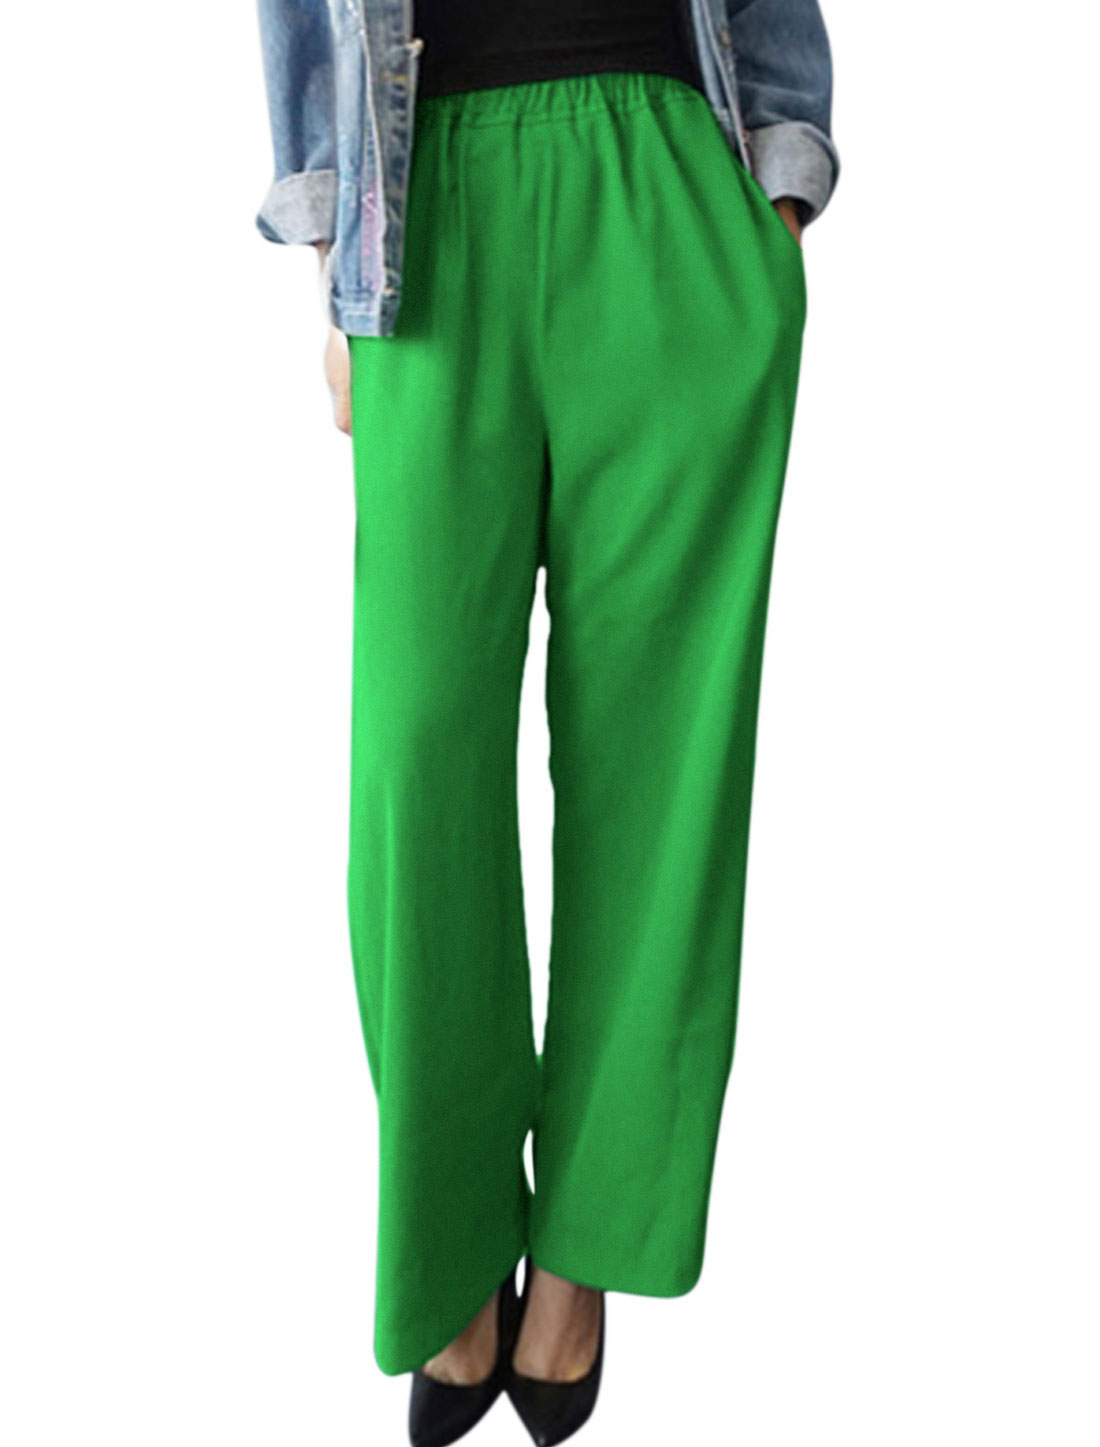 Women High Rise Elastic Waist Two Seam Pockets Wide Leg Pants Green S